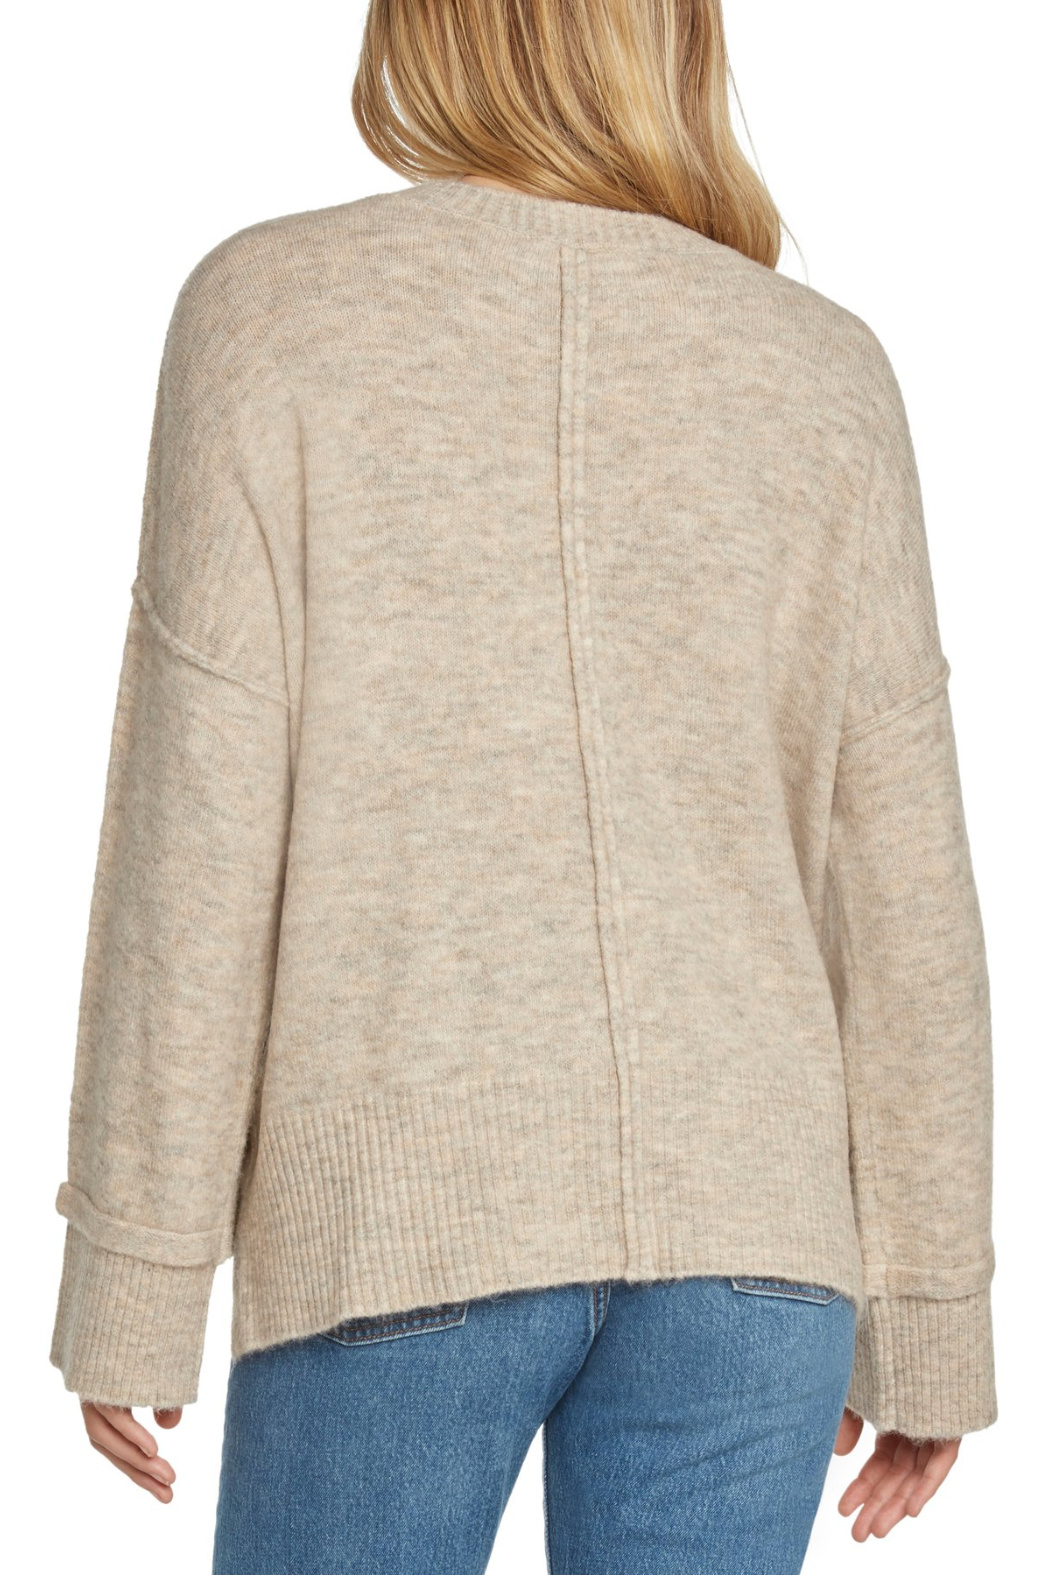 Willow & Clay Contrast Rib Soft Knit Sweater w Side Snaps - Front Full Image